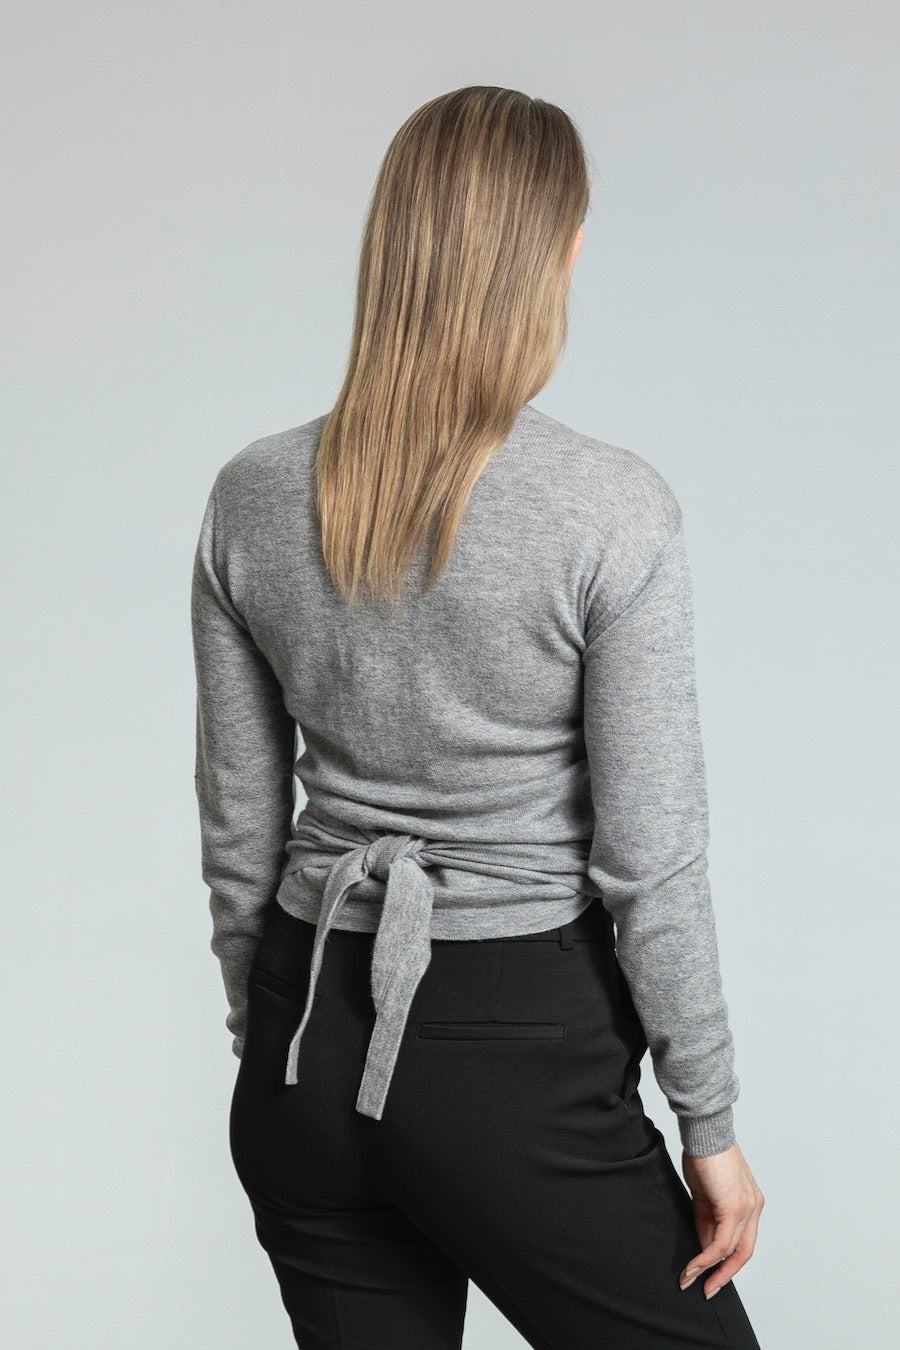 Dinadi - Merino Wrap Cardigan - Flint Grey